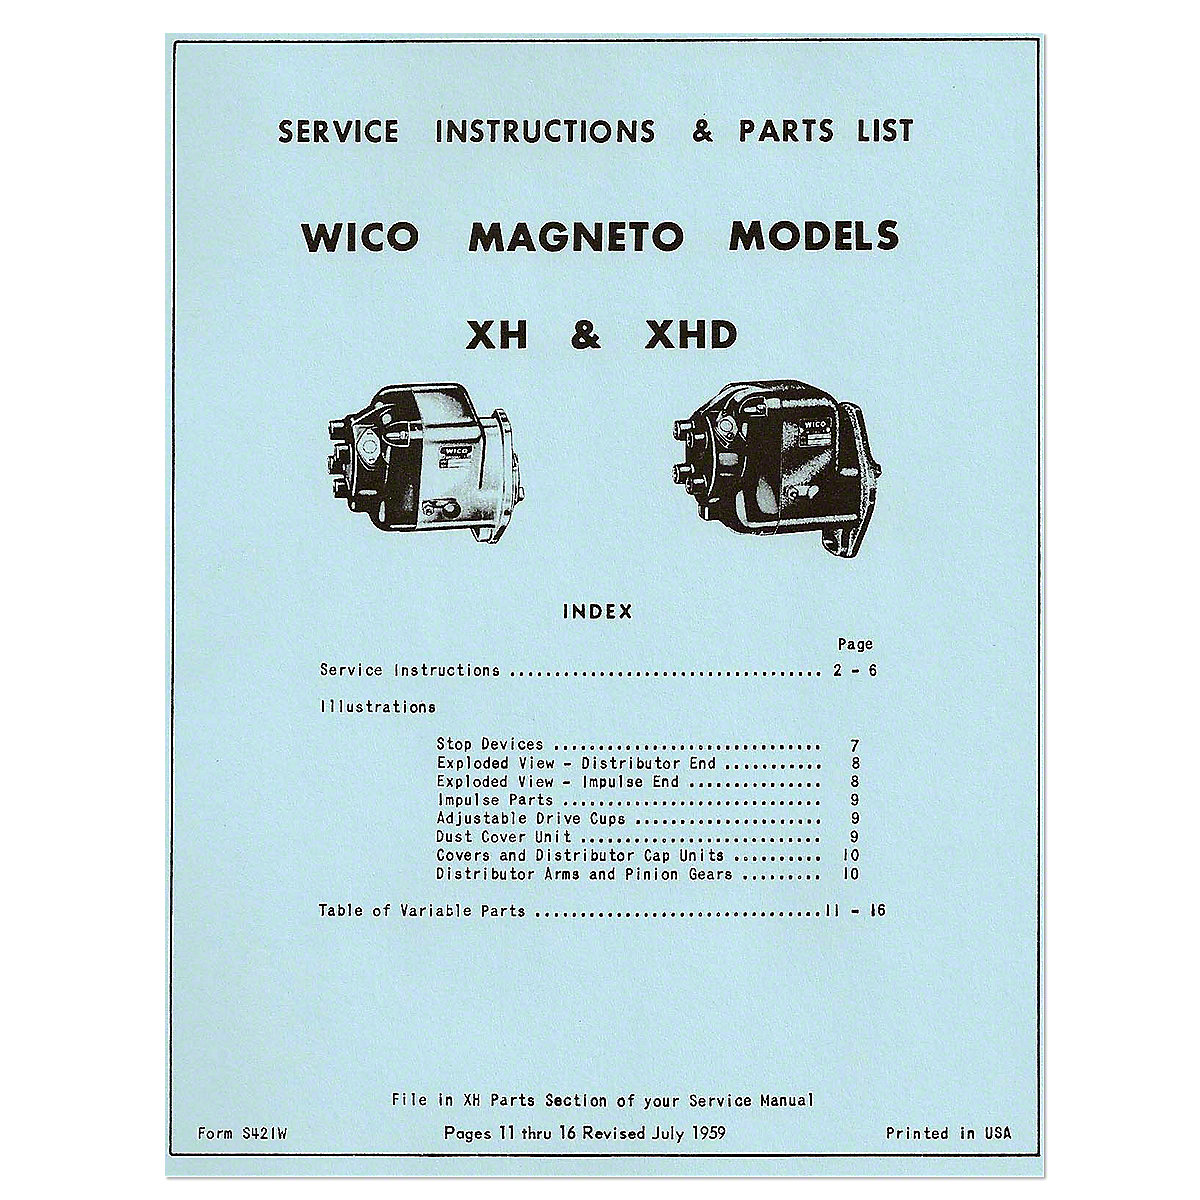 MAG6 Wico XH And XHD Magneto Service - Instructions And Parts List (1959)